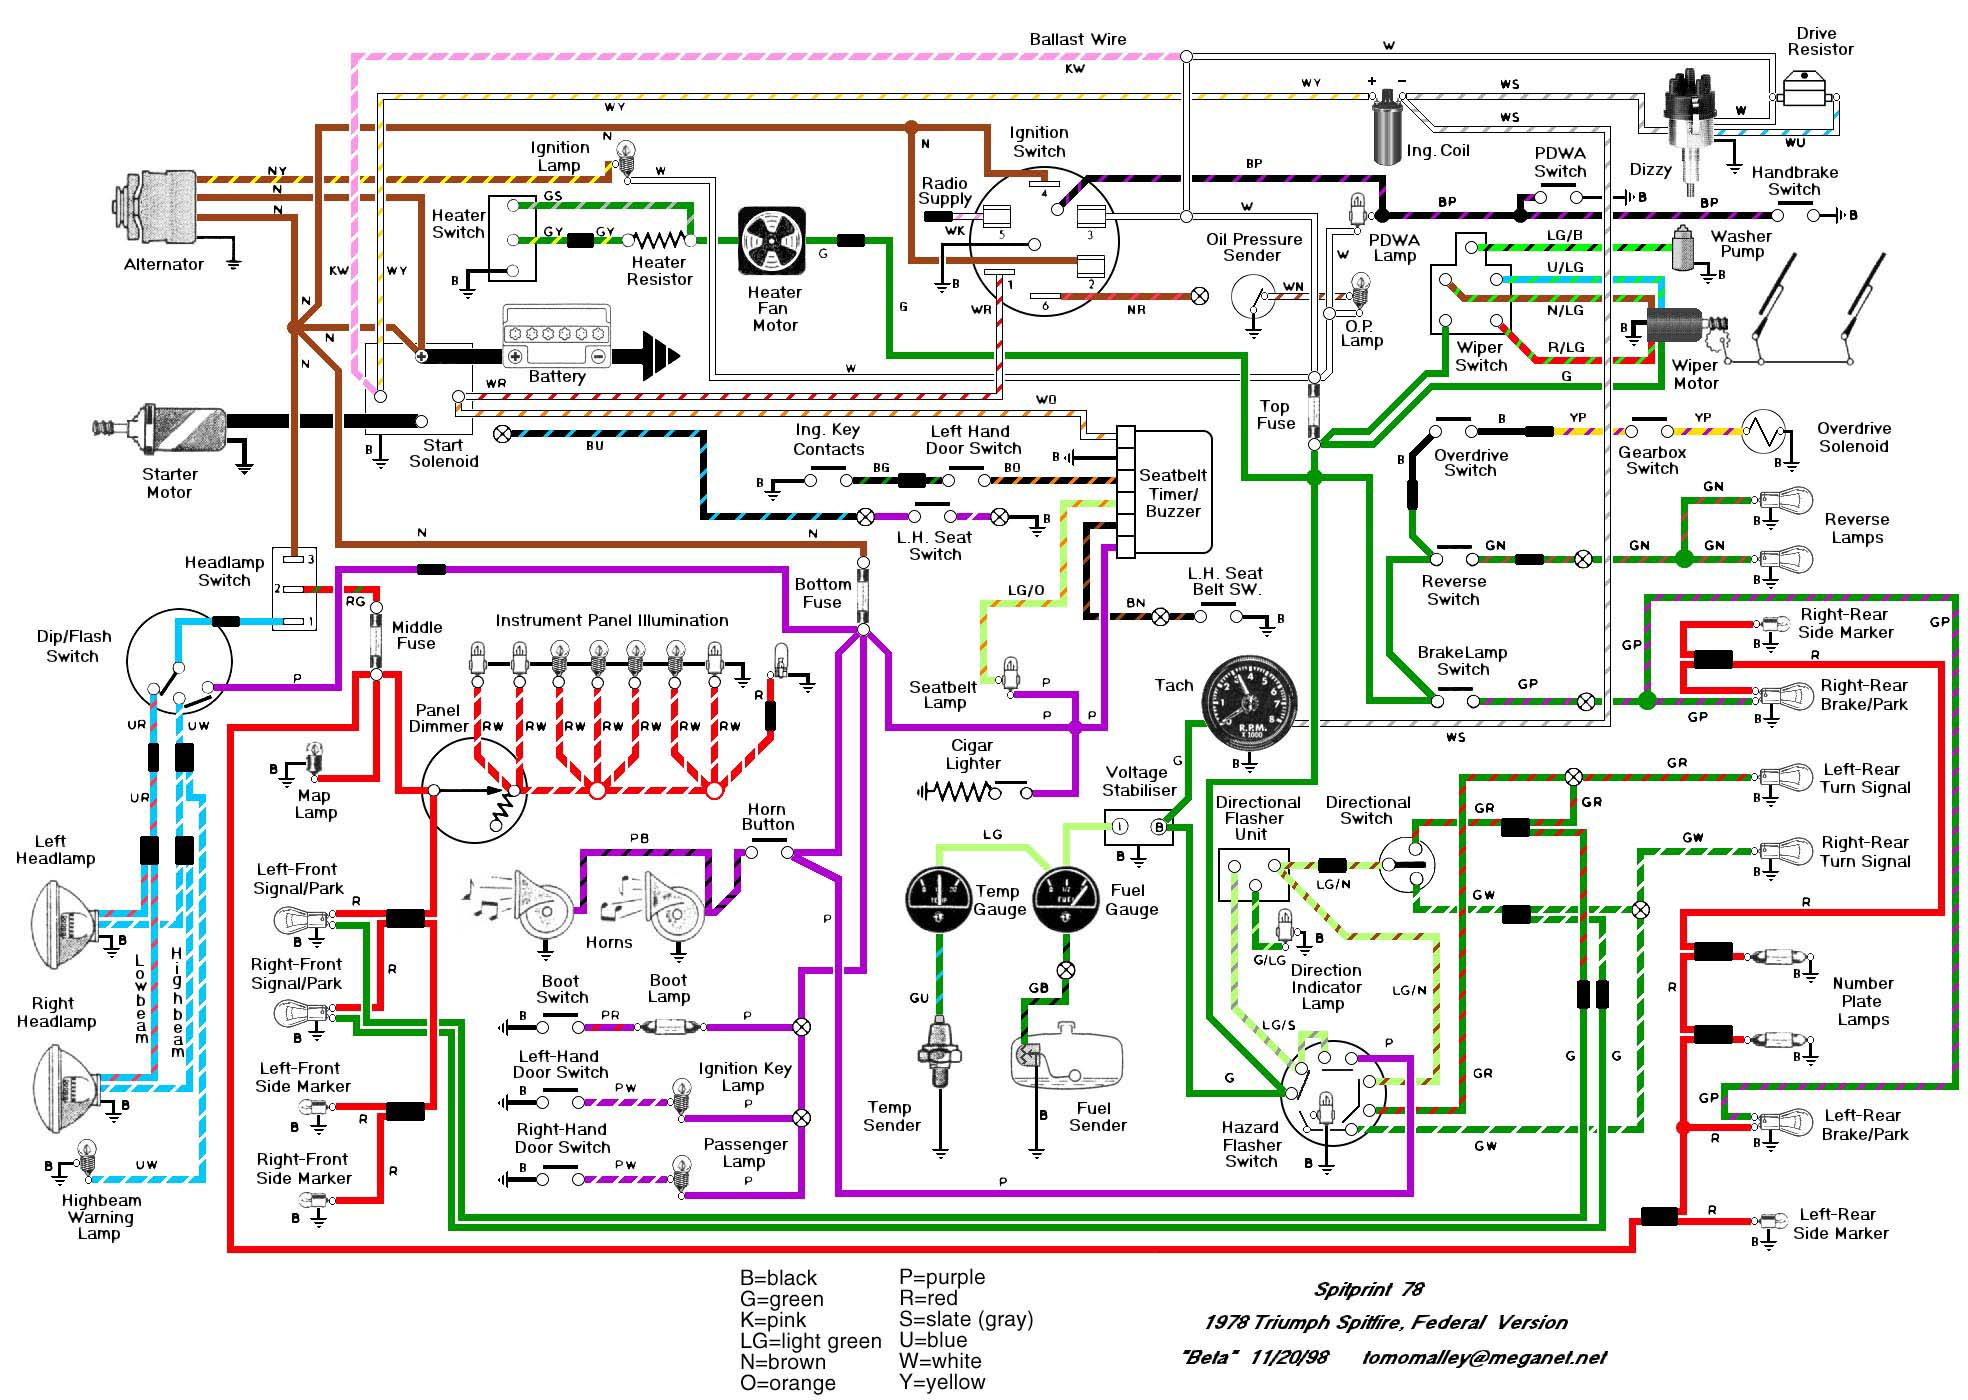 Fantastic Auto Wiring Diagram Program Wiring Library Wiring Cloud Eachirenstrafr09Org